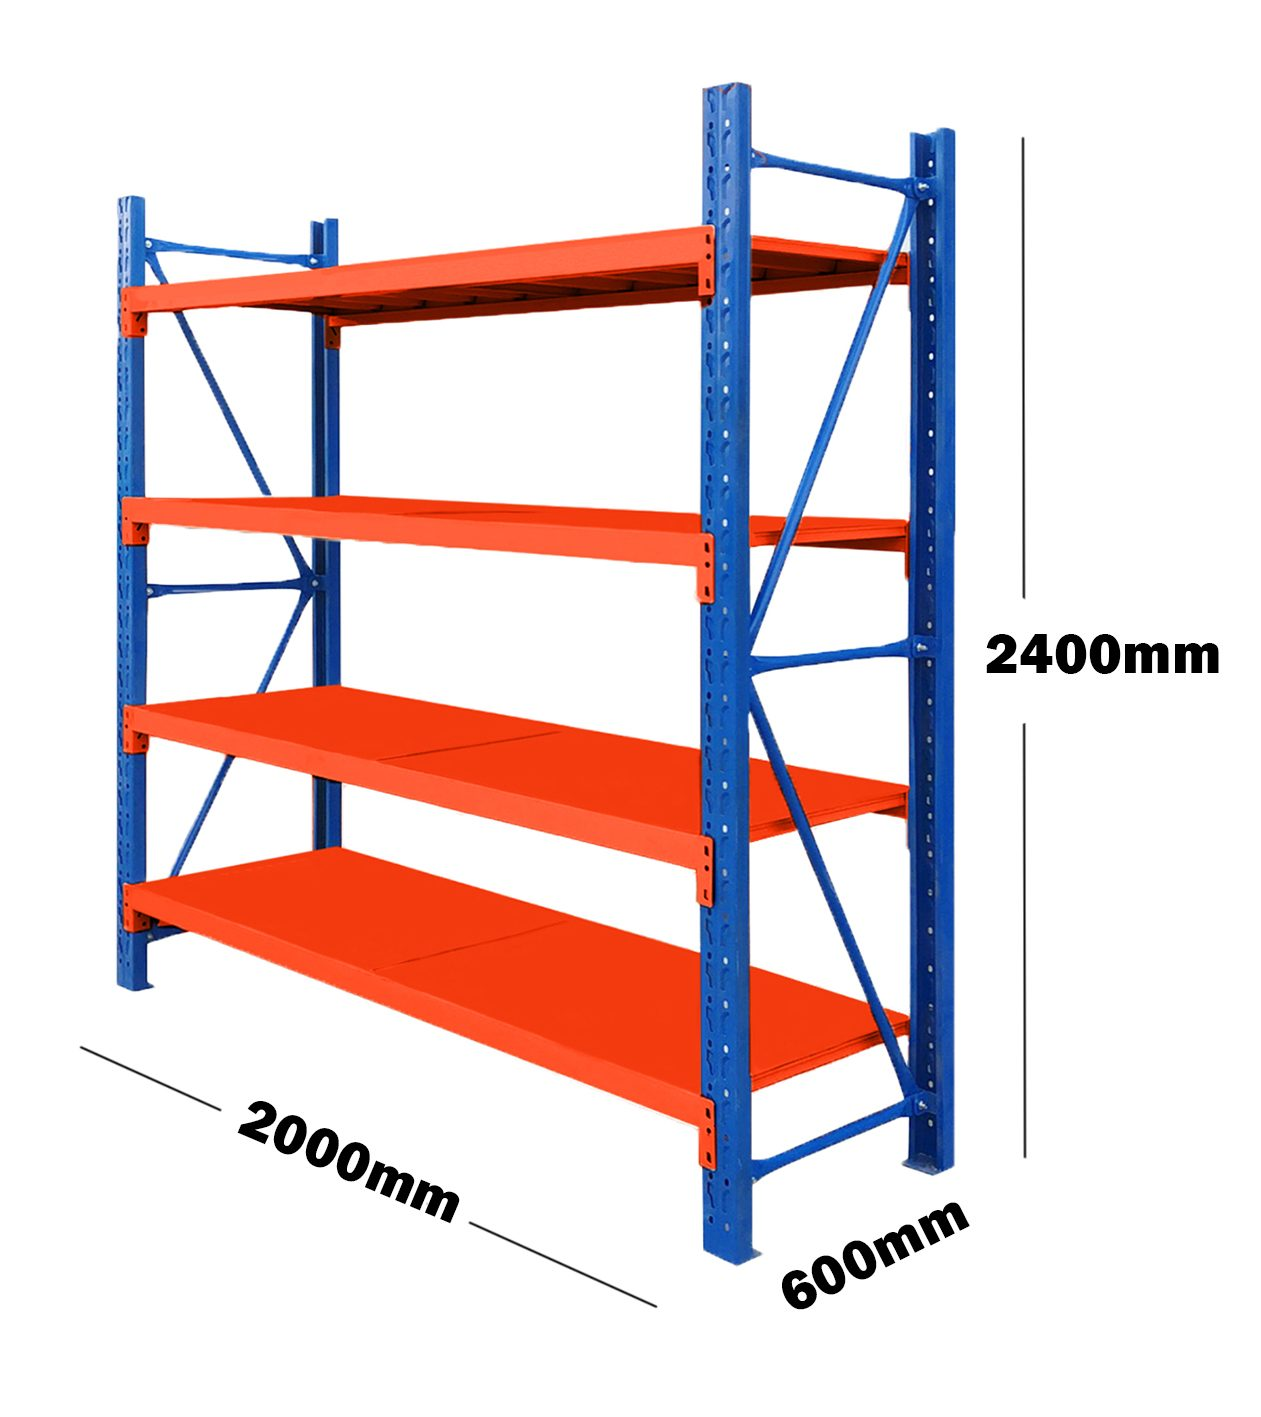 2M(L) x 2.4M(H) x 0.6M(D) Shelves Racking Metal Steel 2024BO